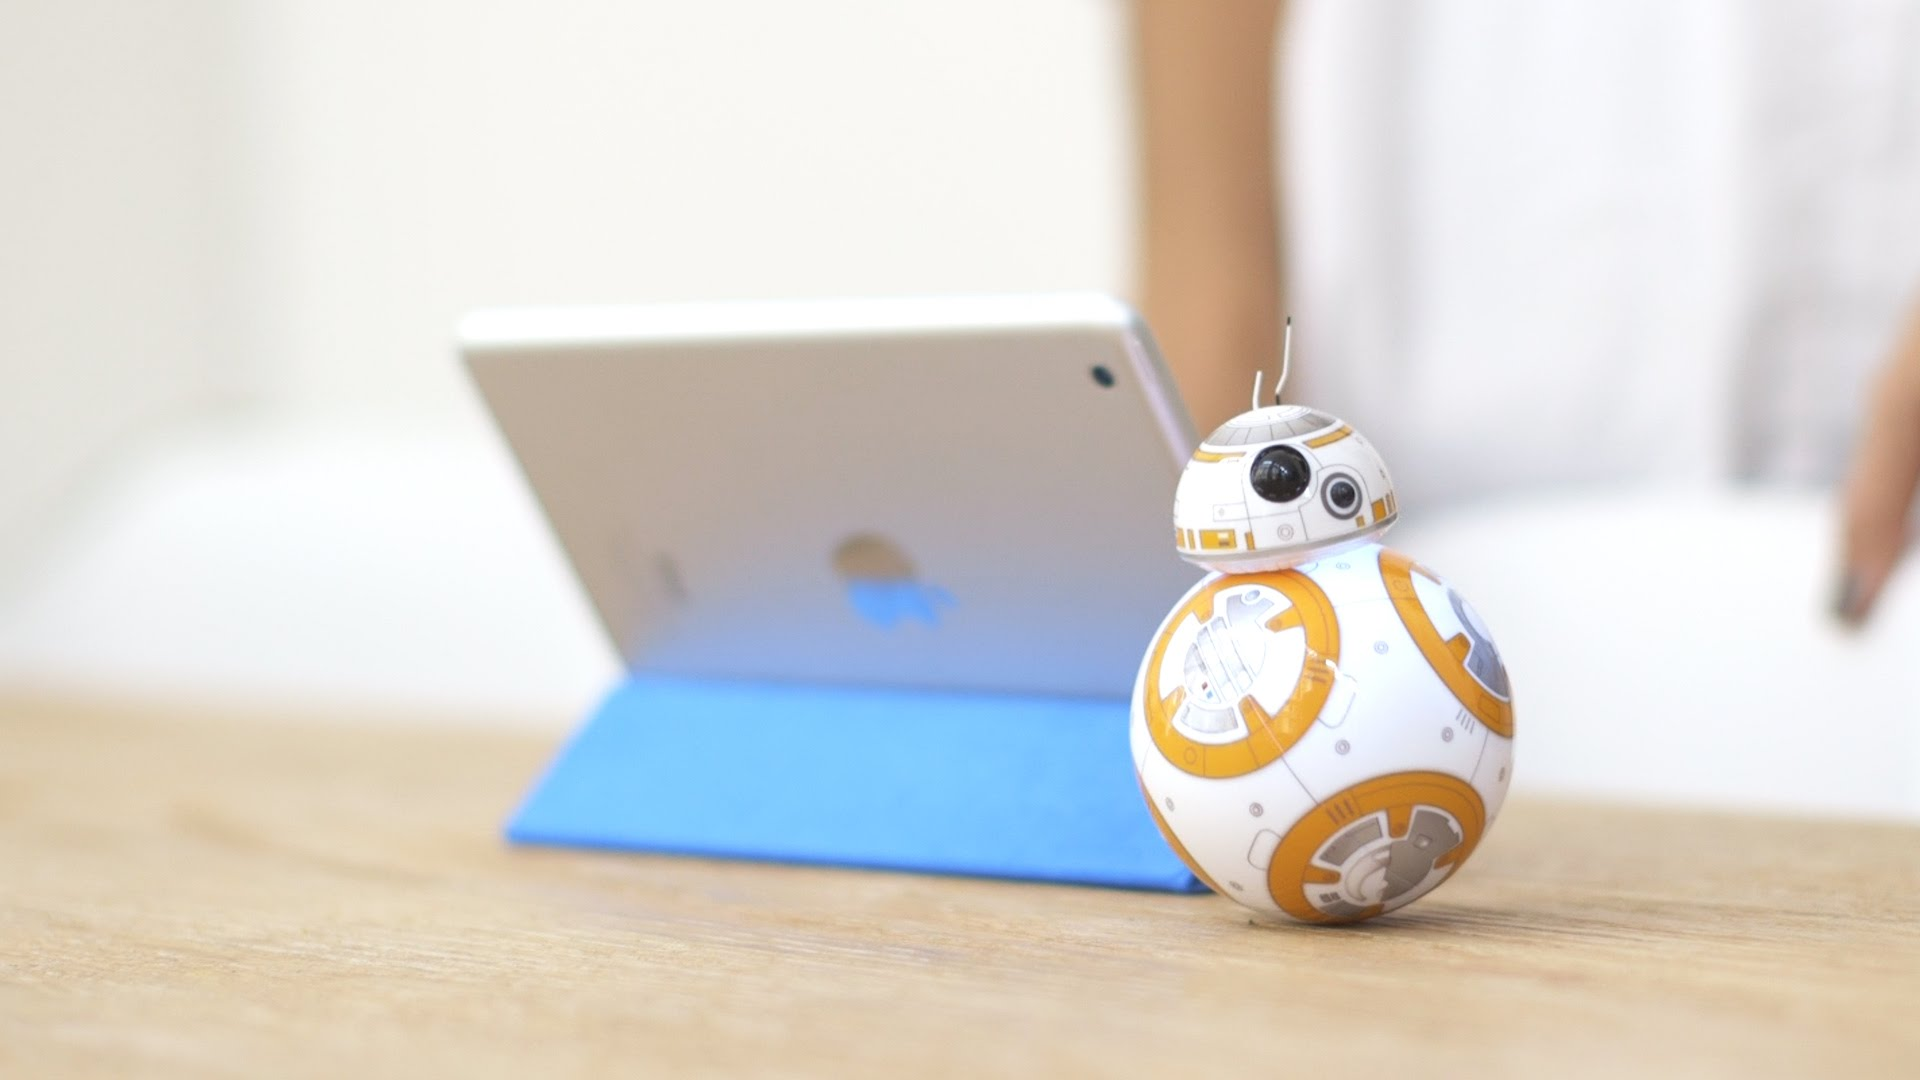 #StarWars #BB8 The Star Wars BB-8 droid can now patrol your home